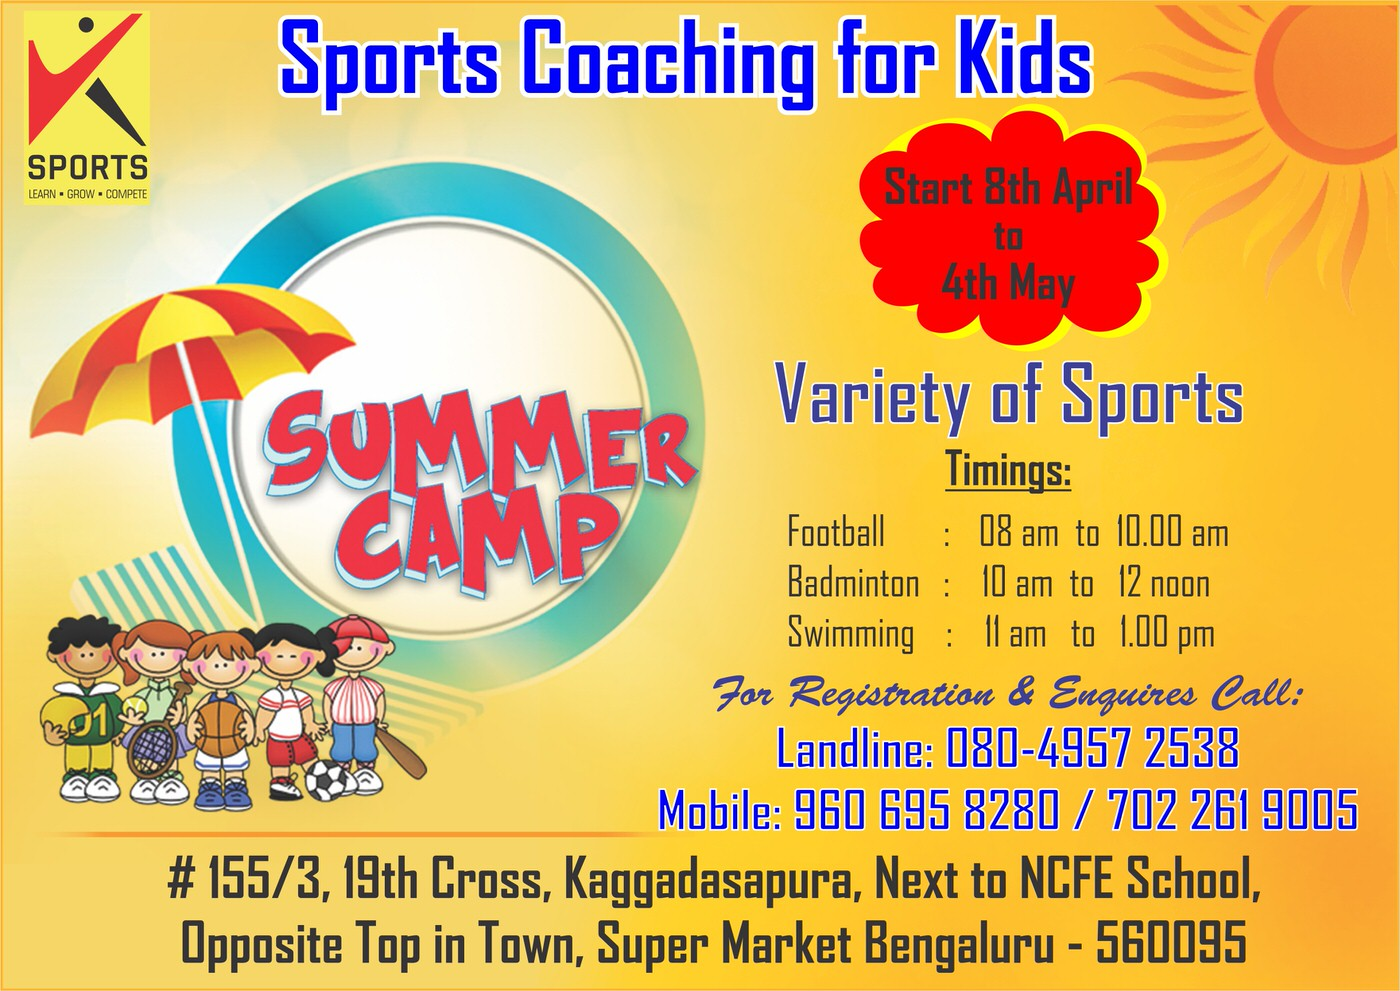 Sports Coaching For Kids 2019 Cover Image